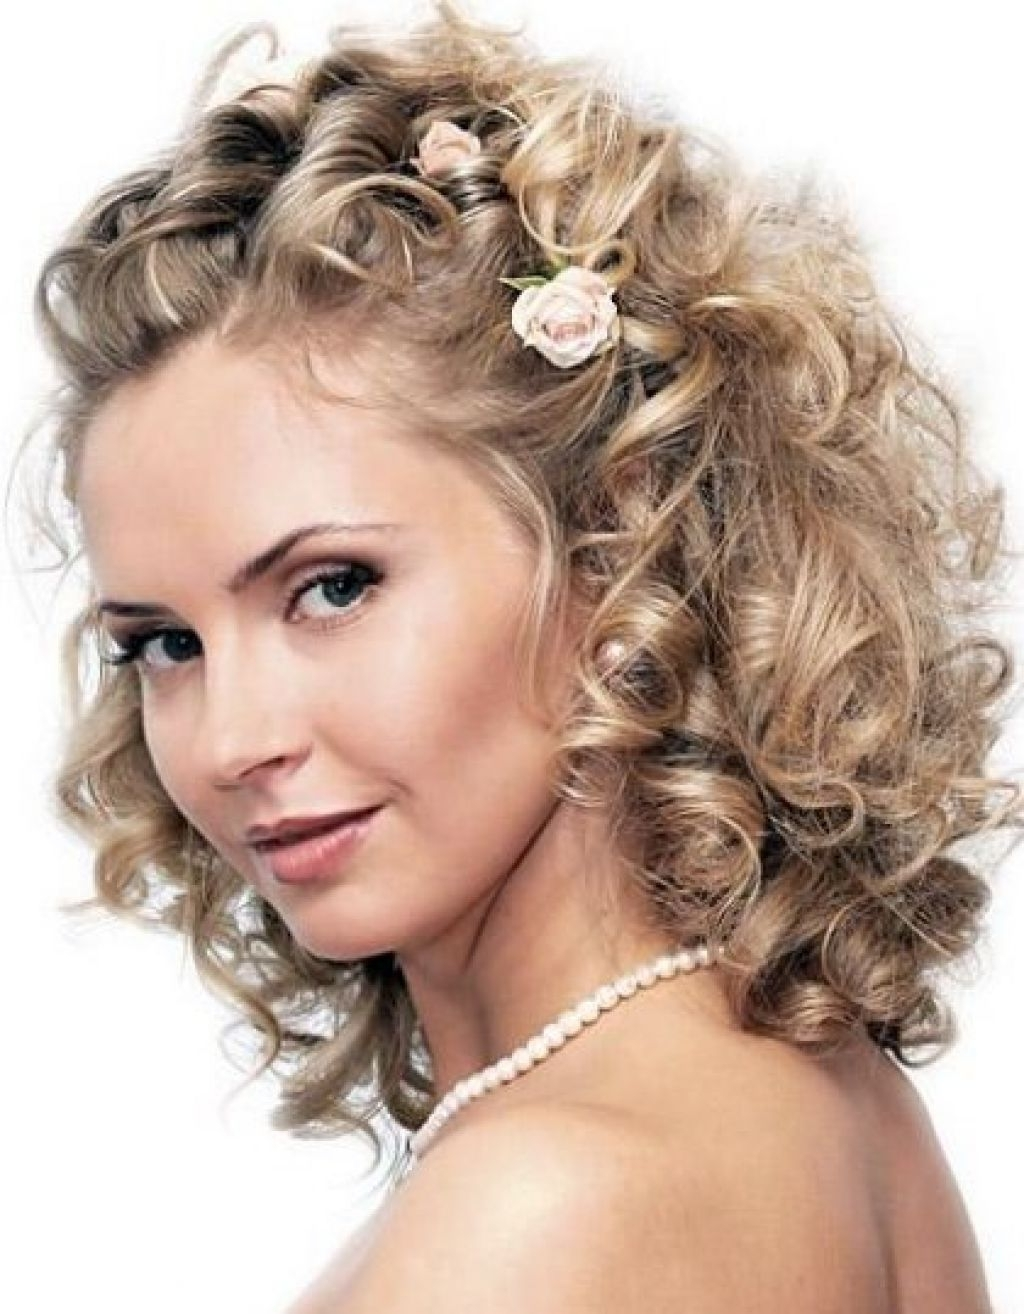 Women Curly Wedding Hairstyles For Medium Length Hair Naturally Inside 2018 Wedding Hairstyles For Medium Length With Blonde Hair (View 15 of 15)